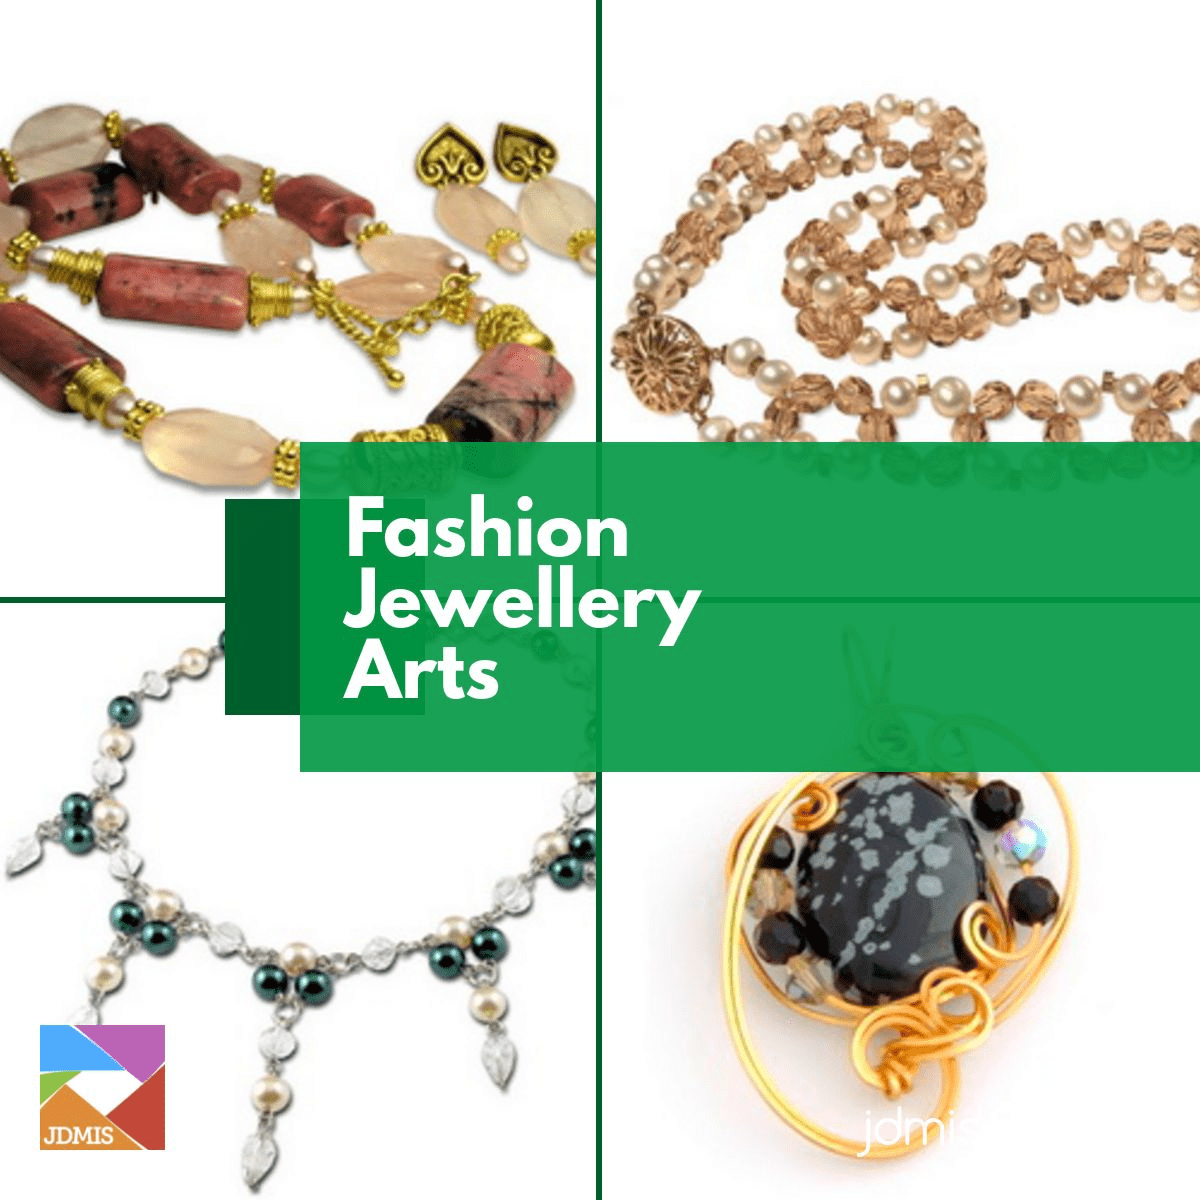 Get started in fashion jewellery design by assembling unique pieces with different hands-on techniques.